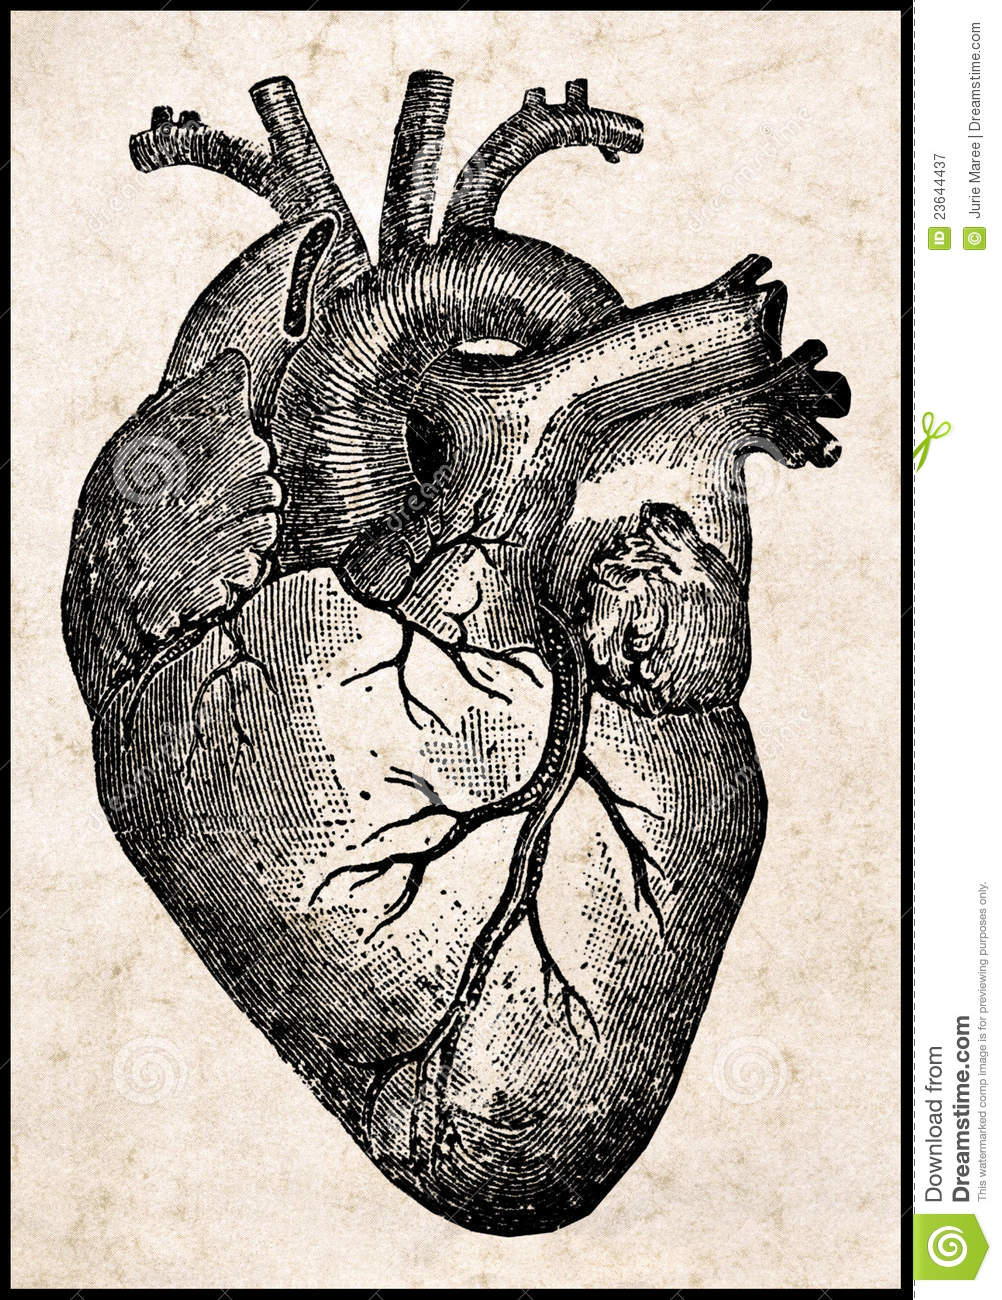 Human Heart. Royalty Free Stock Photography - Image: 23644437